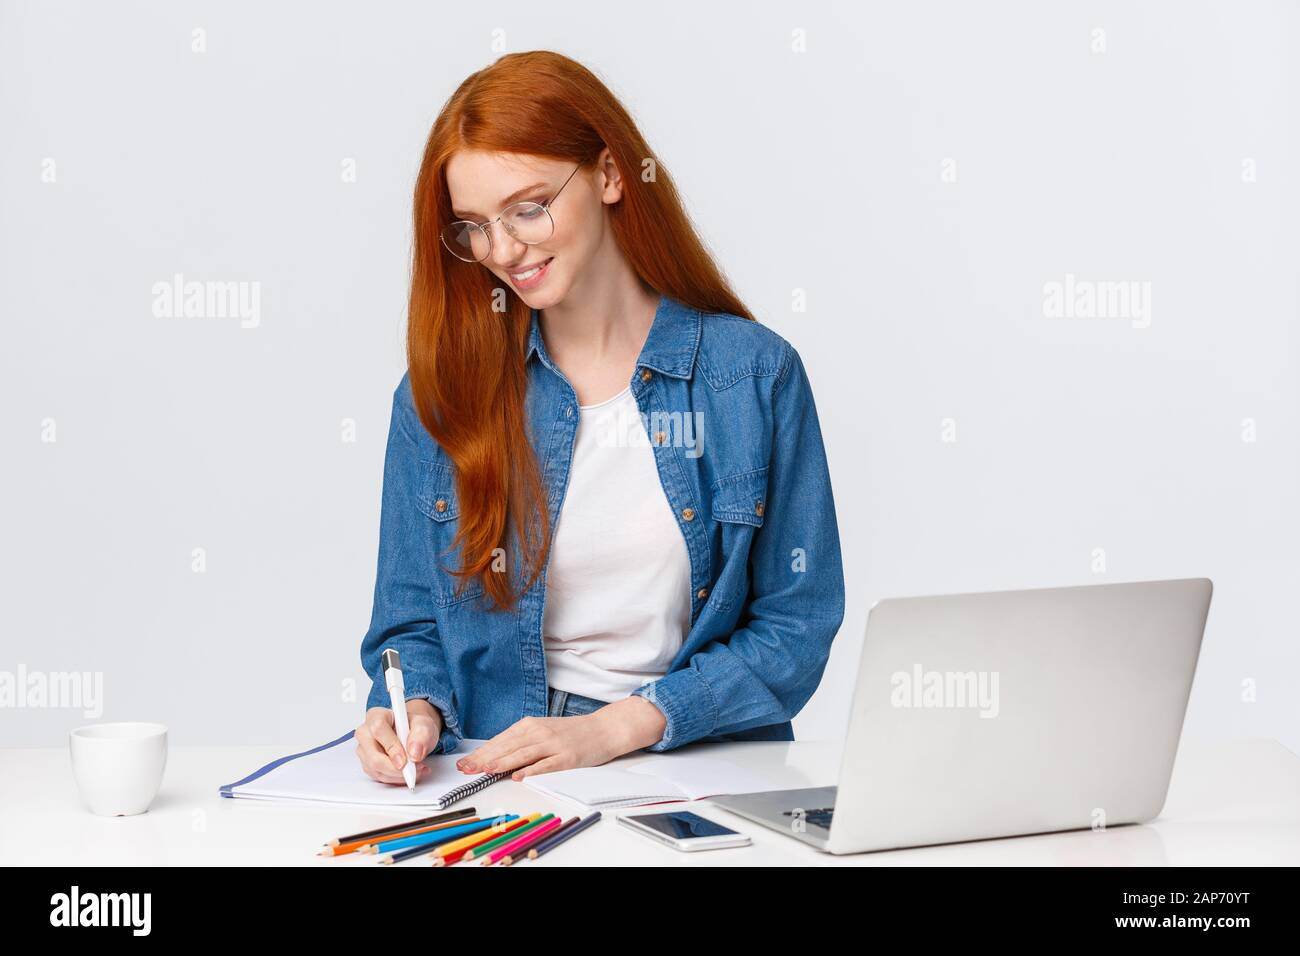 Creative And Talented Cute Girl Dream Become Famous Fashion Designer Create Own Designes And Project Taking Notes As Working Over Tablet With Laptop Stock Photo Alamy